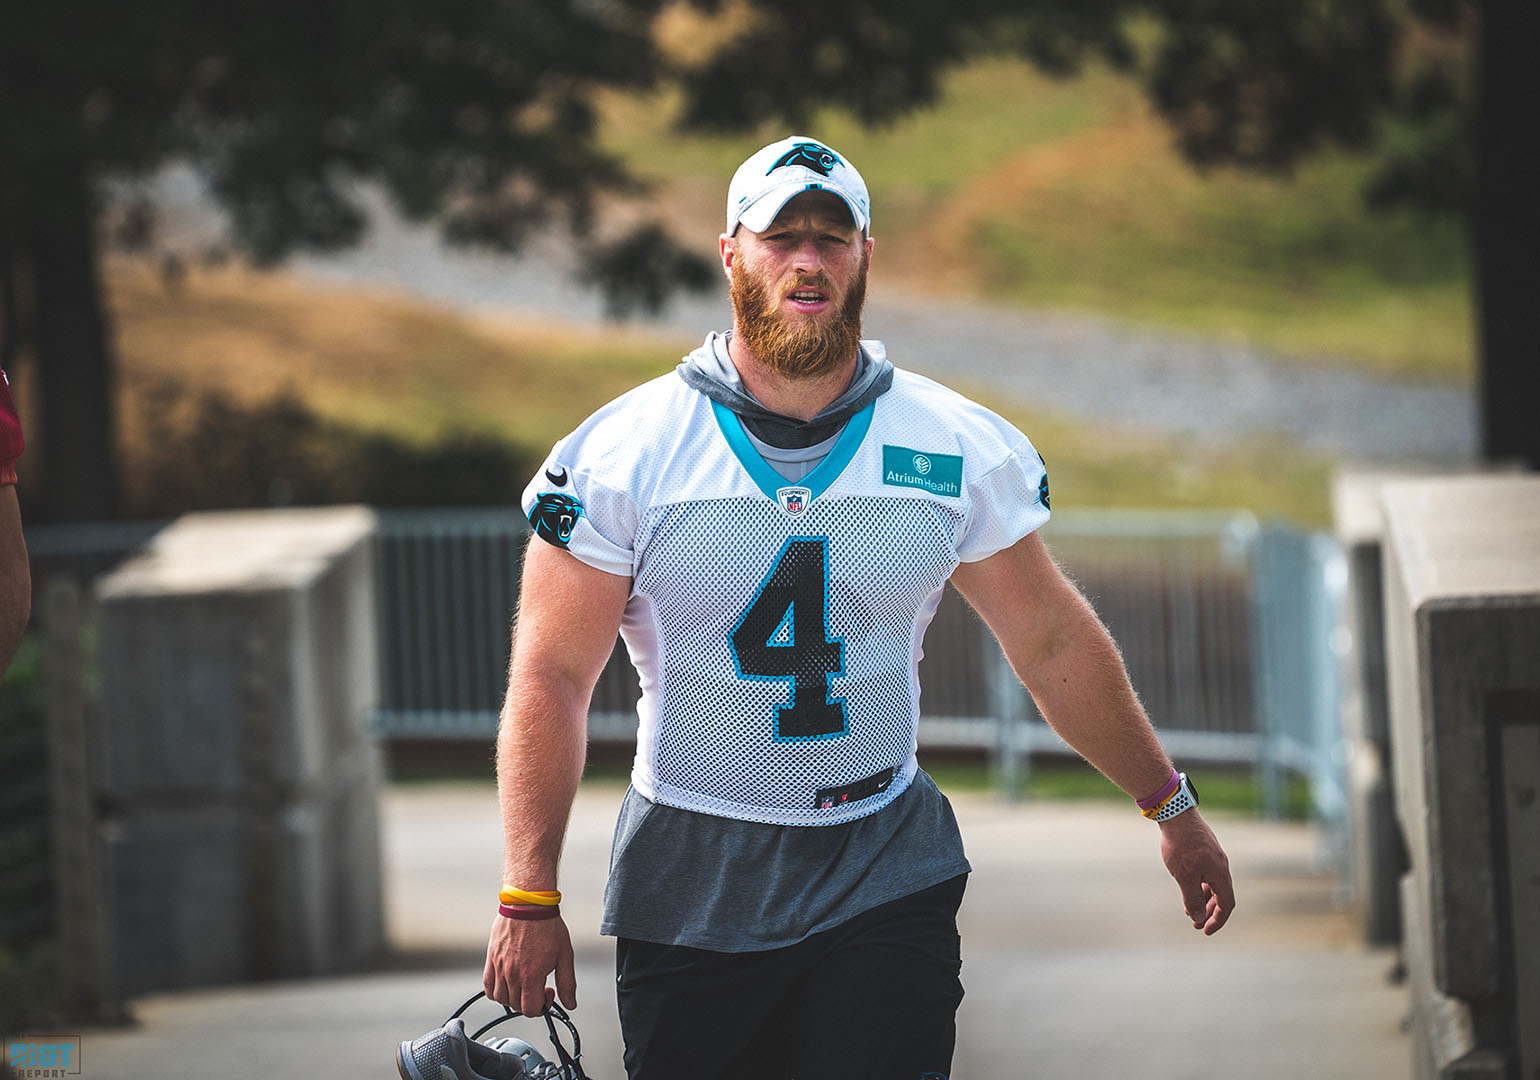 The Life Of A (Swole) Kicker Remains The Same For Joey Slye